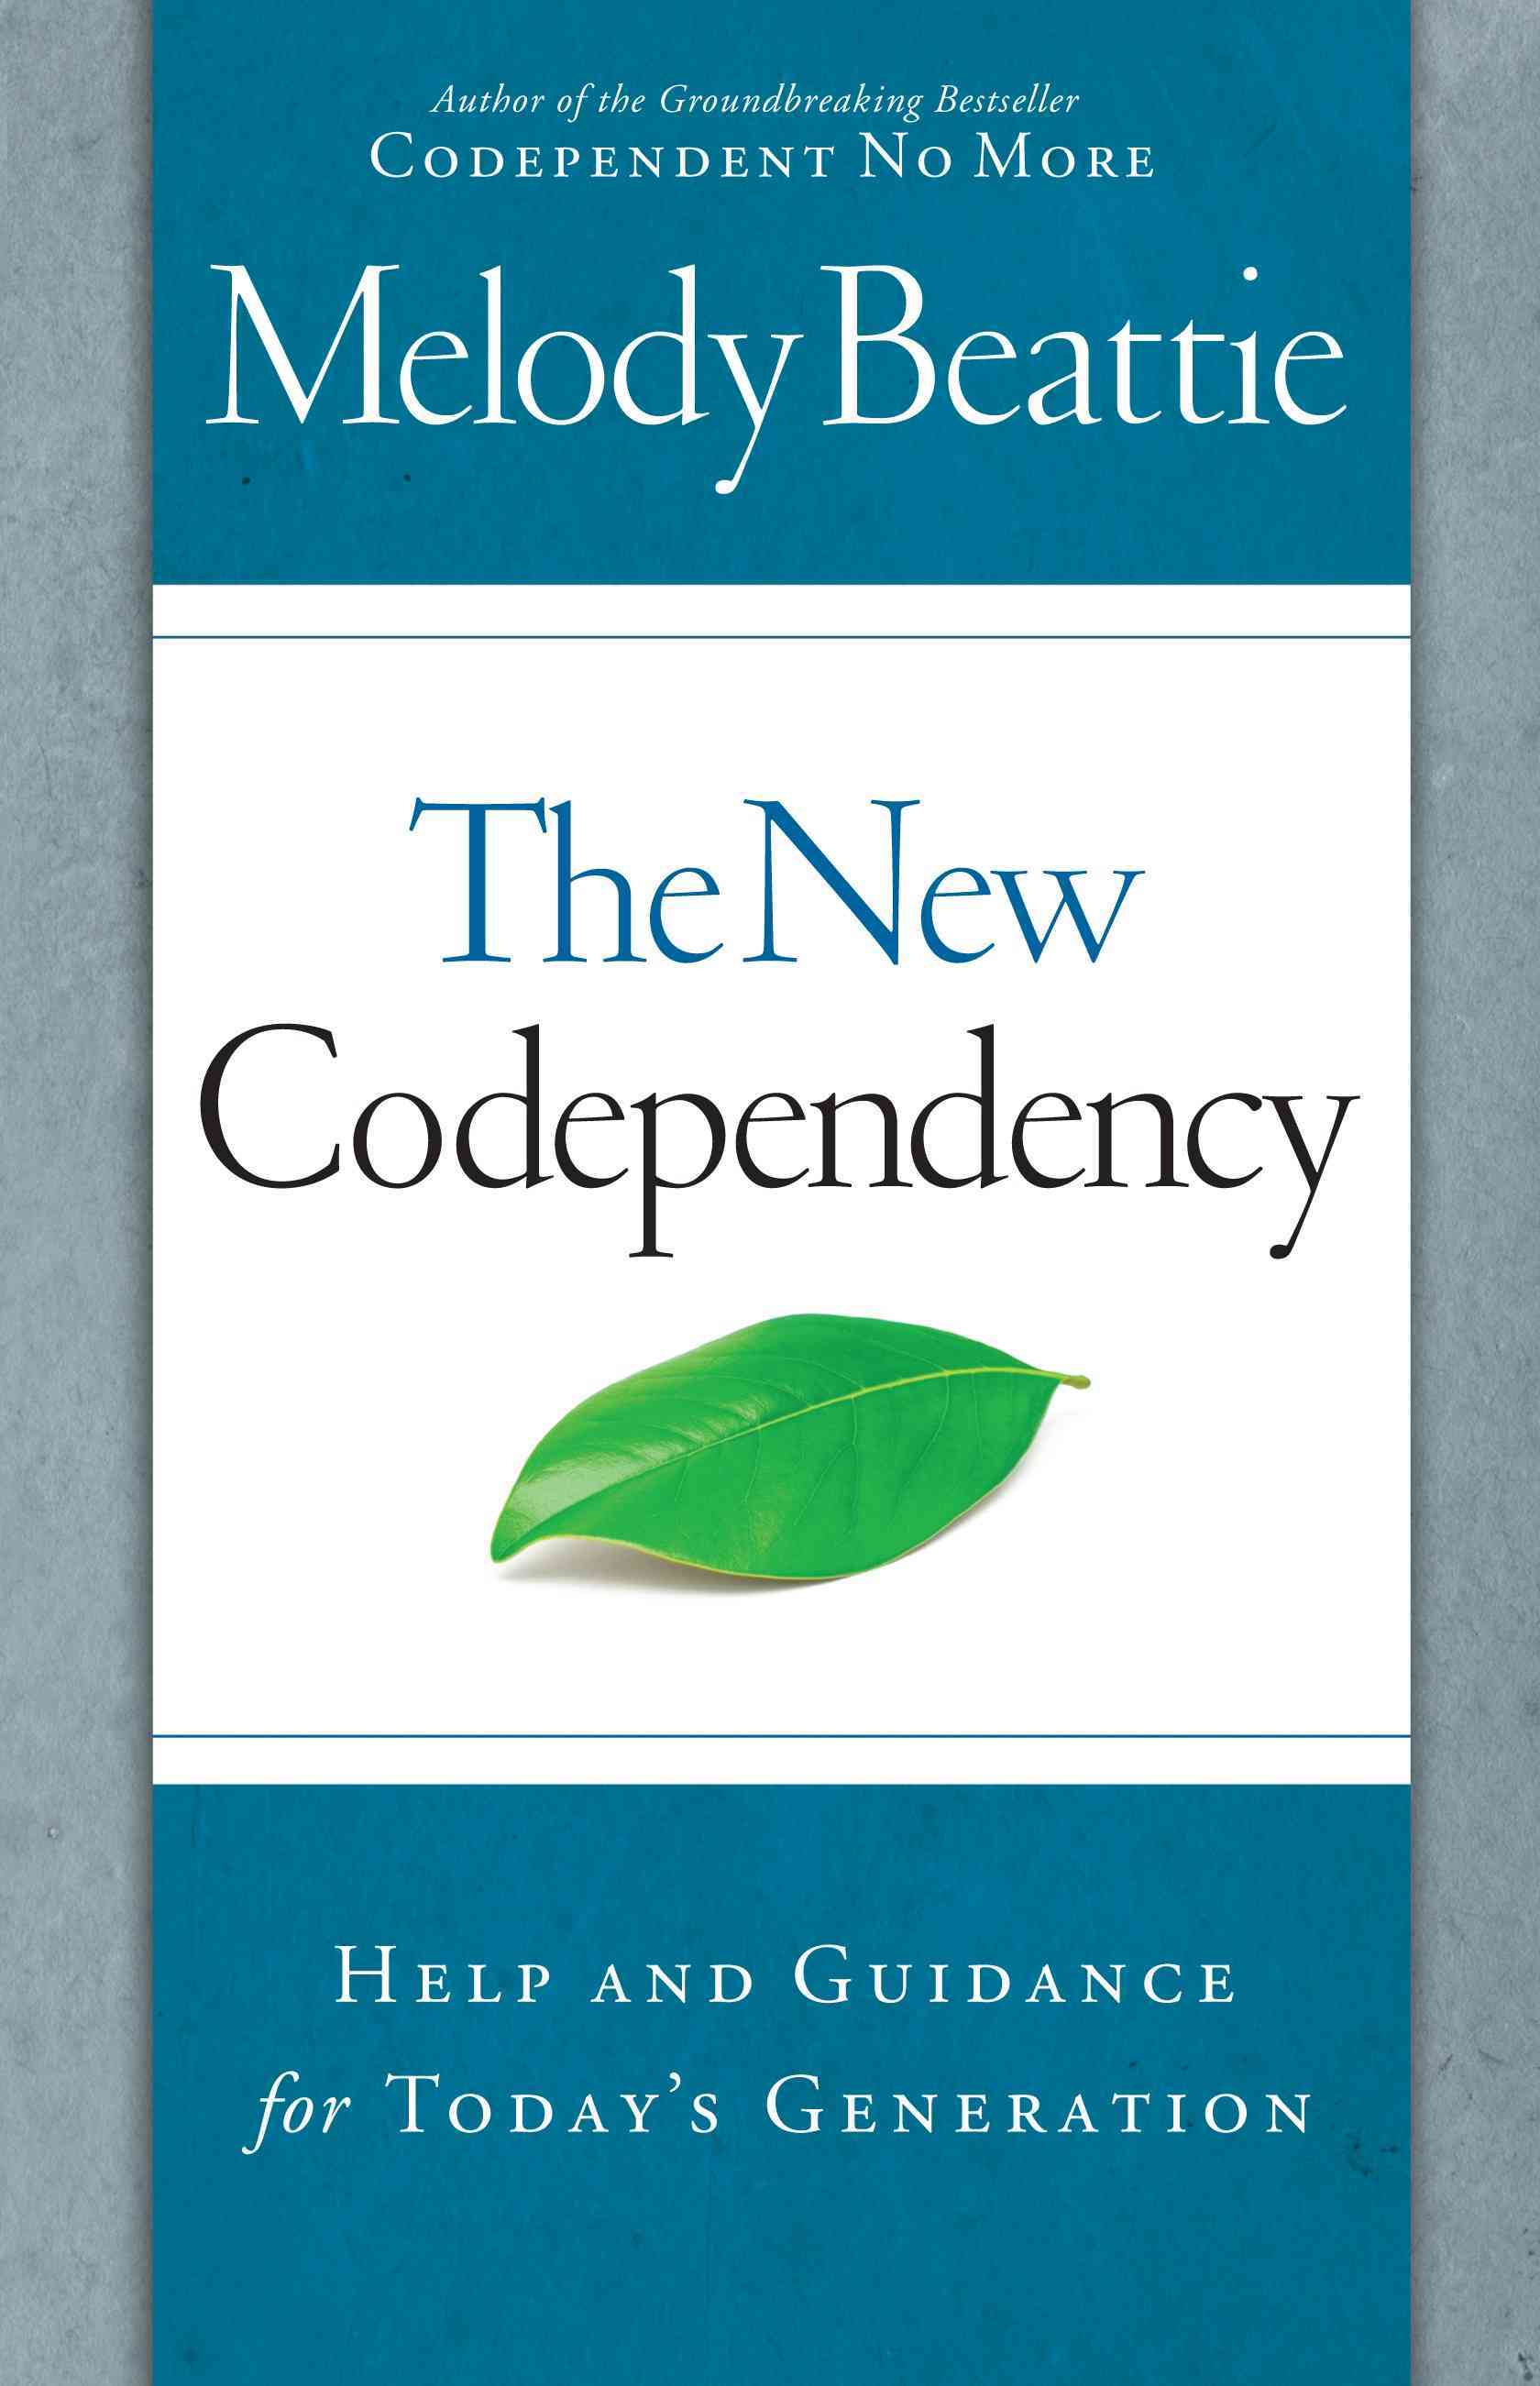 The New Codependency: Help and Guidance for Today's Generation (Paperback)